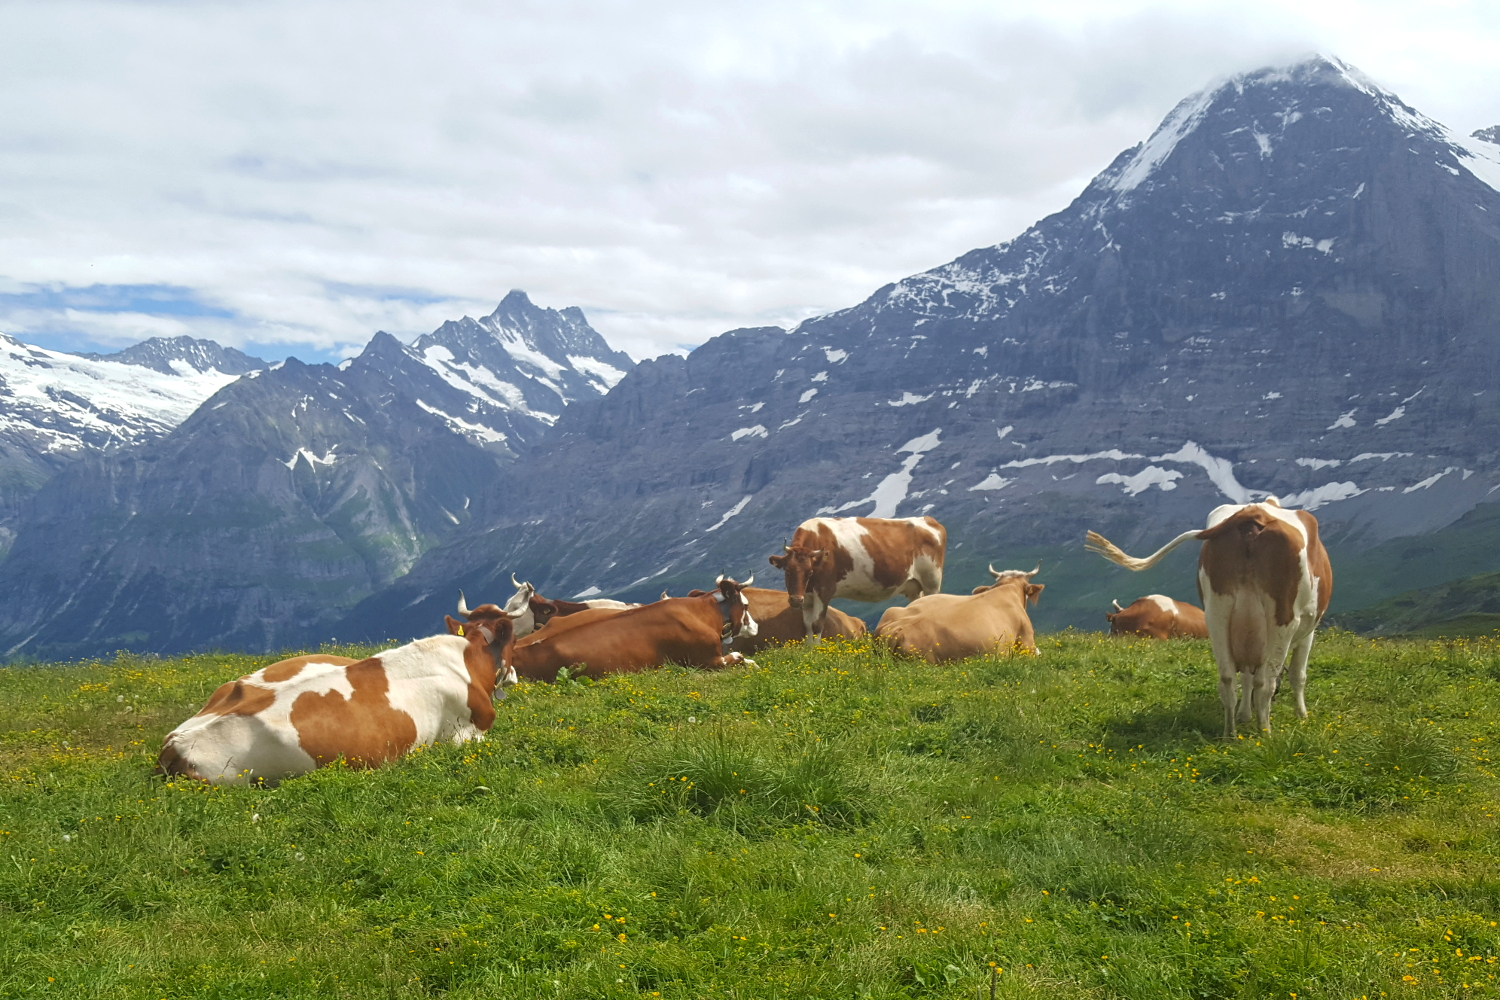 Alpine cattle at Mannlichen, above the resort of Wengen in Switzerland